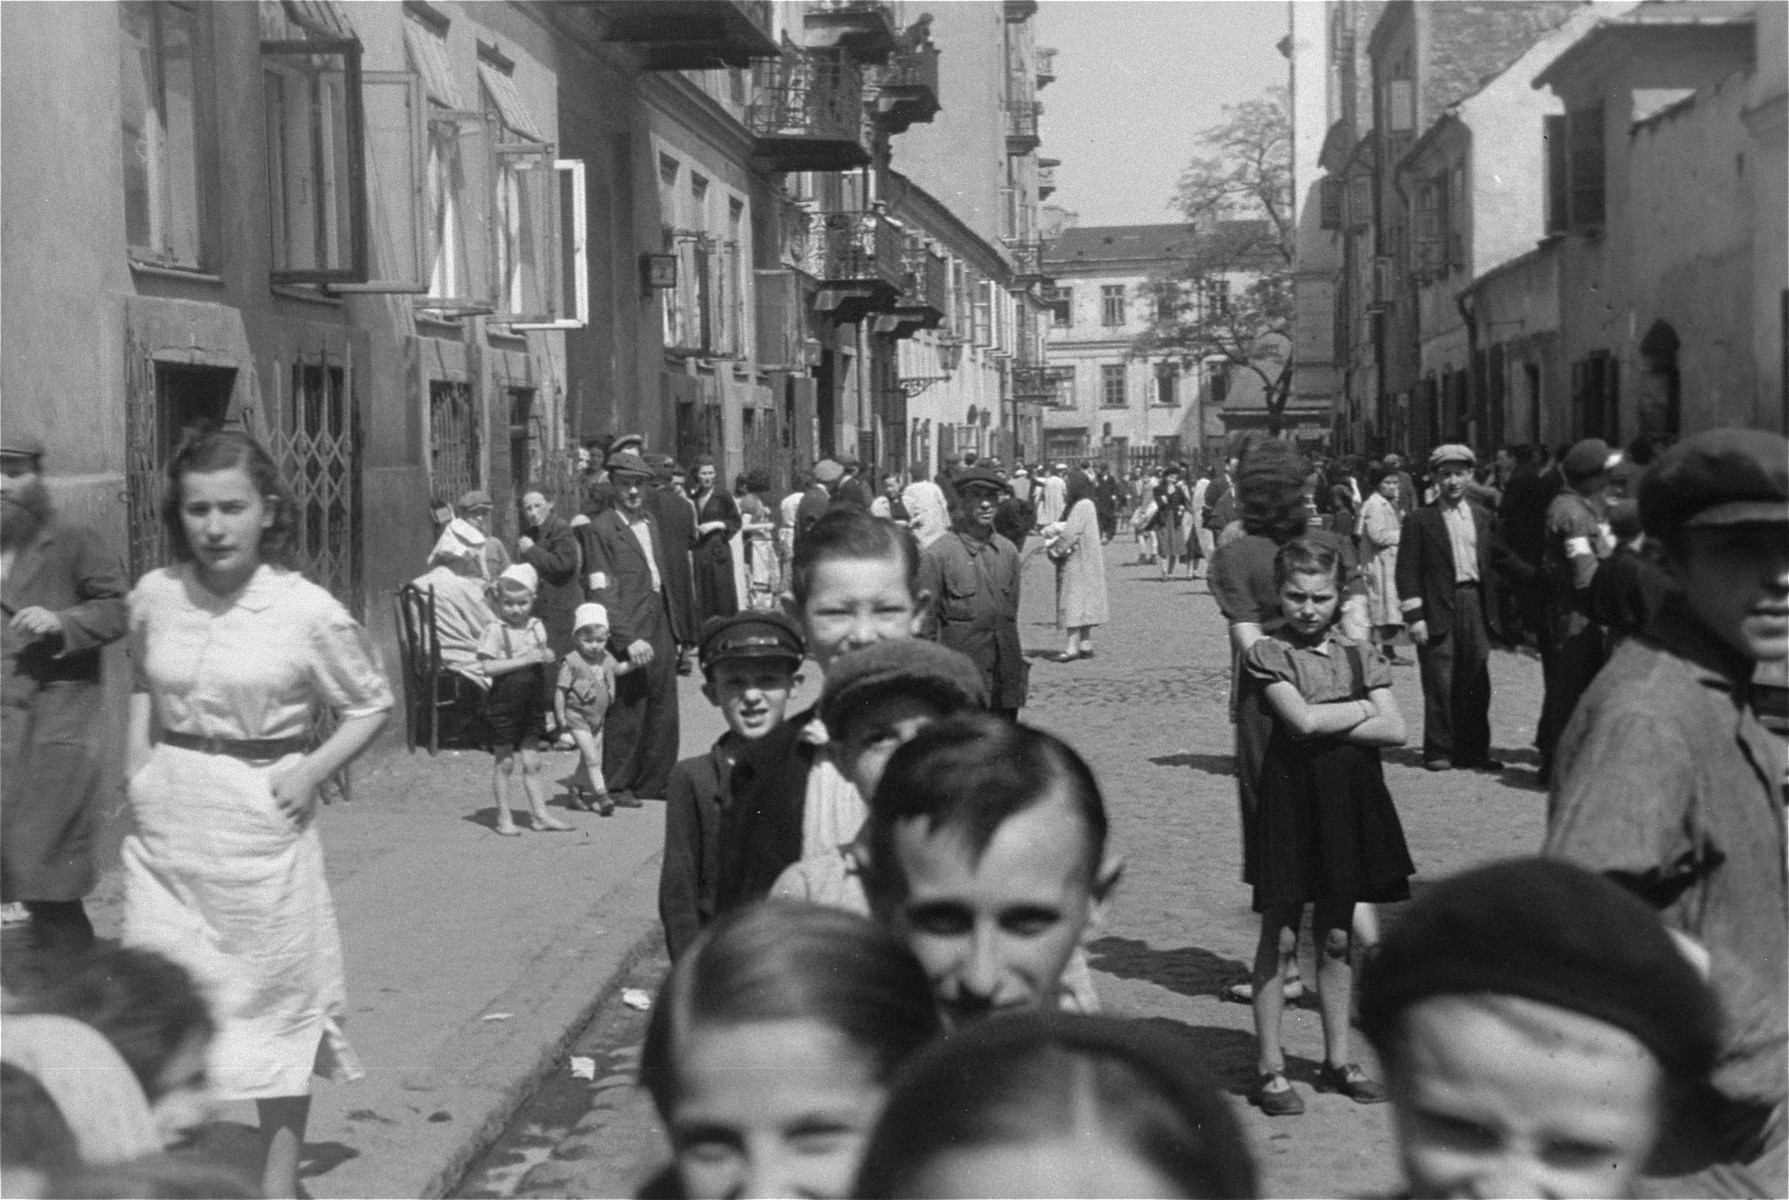 Jews mill around on a side street in the Warsaw ghetto.